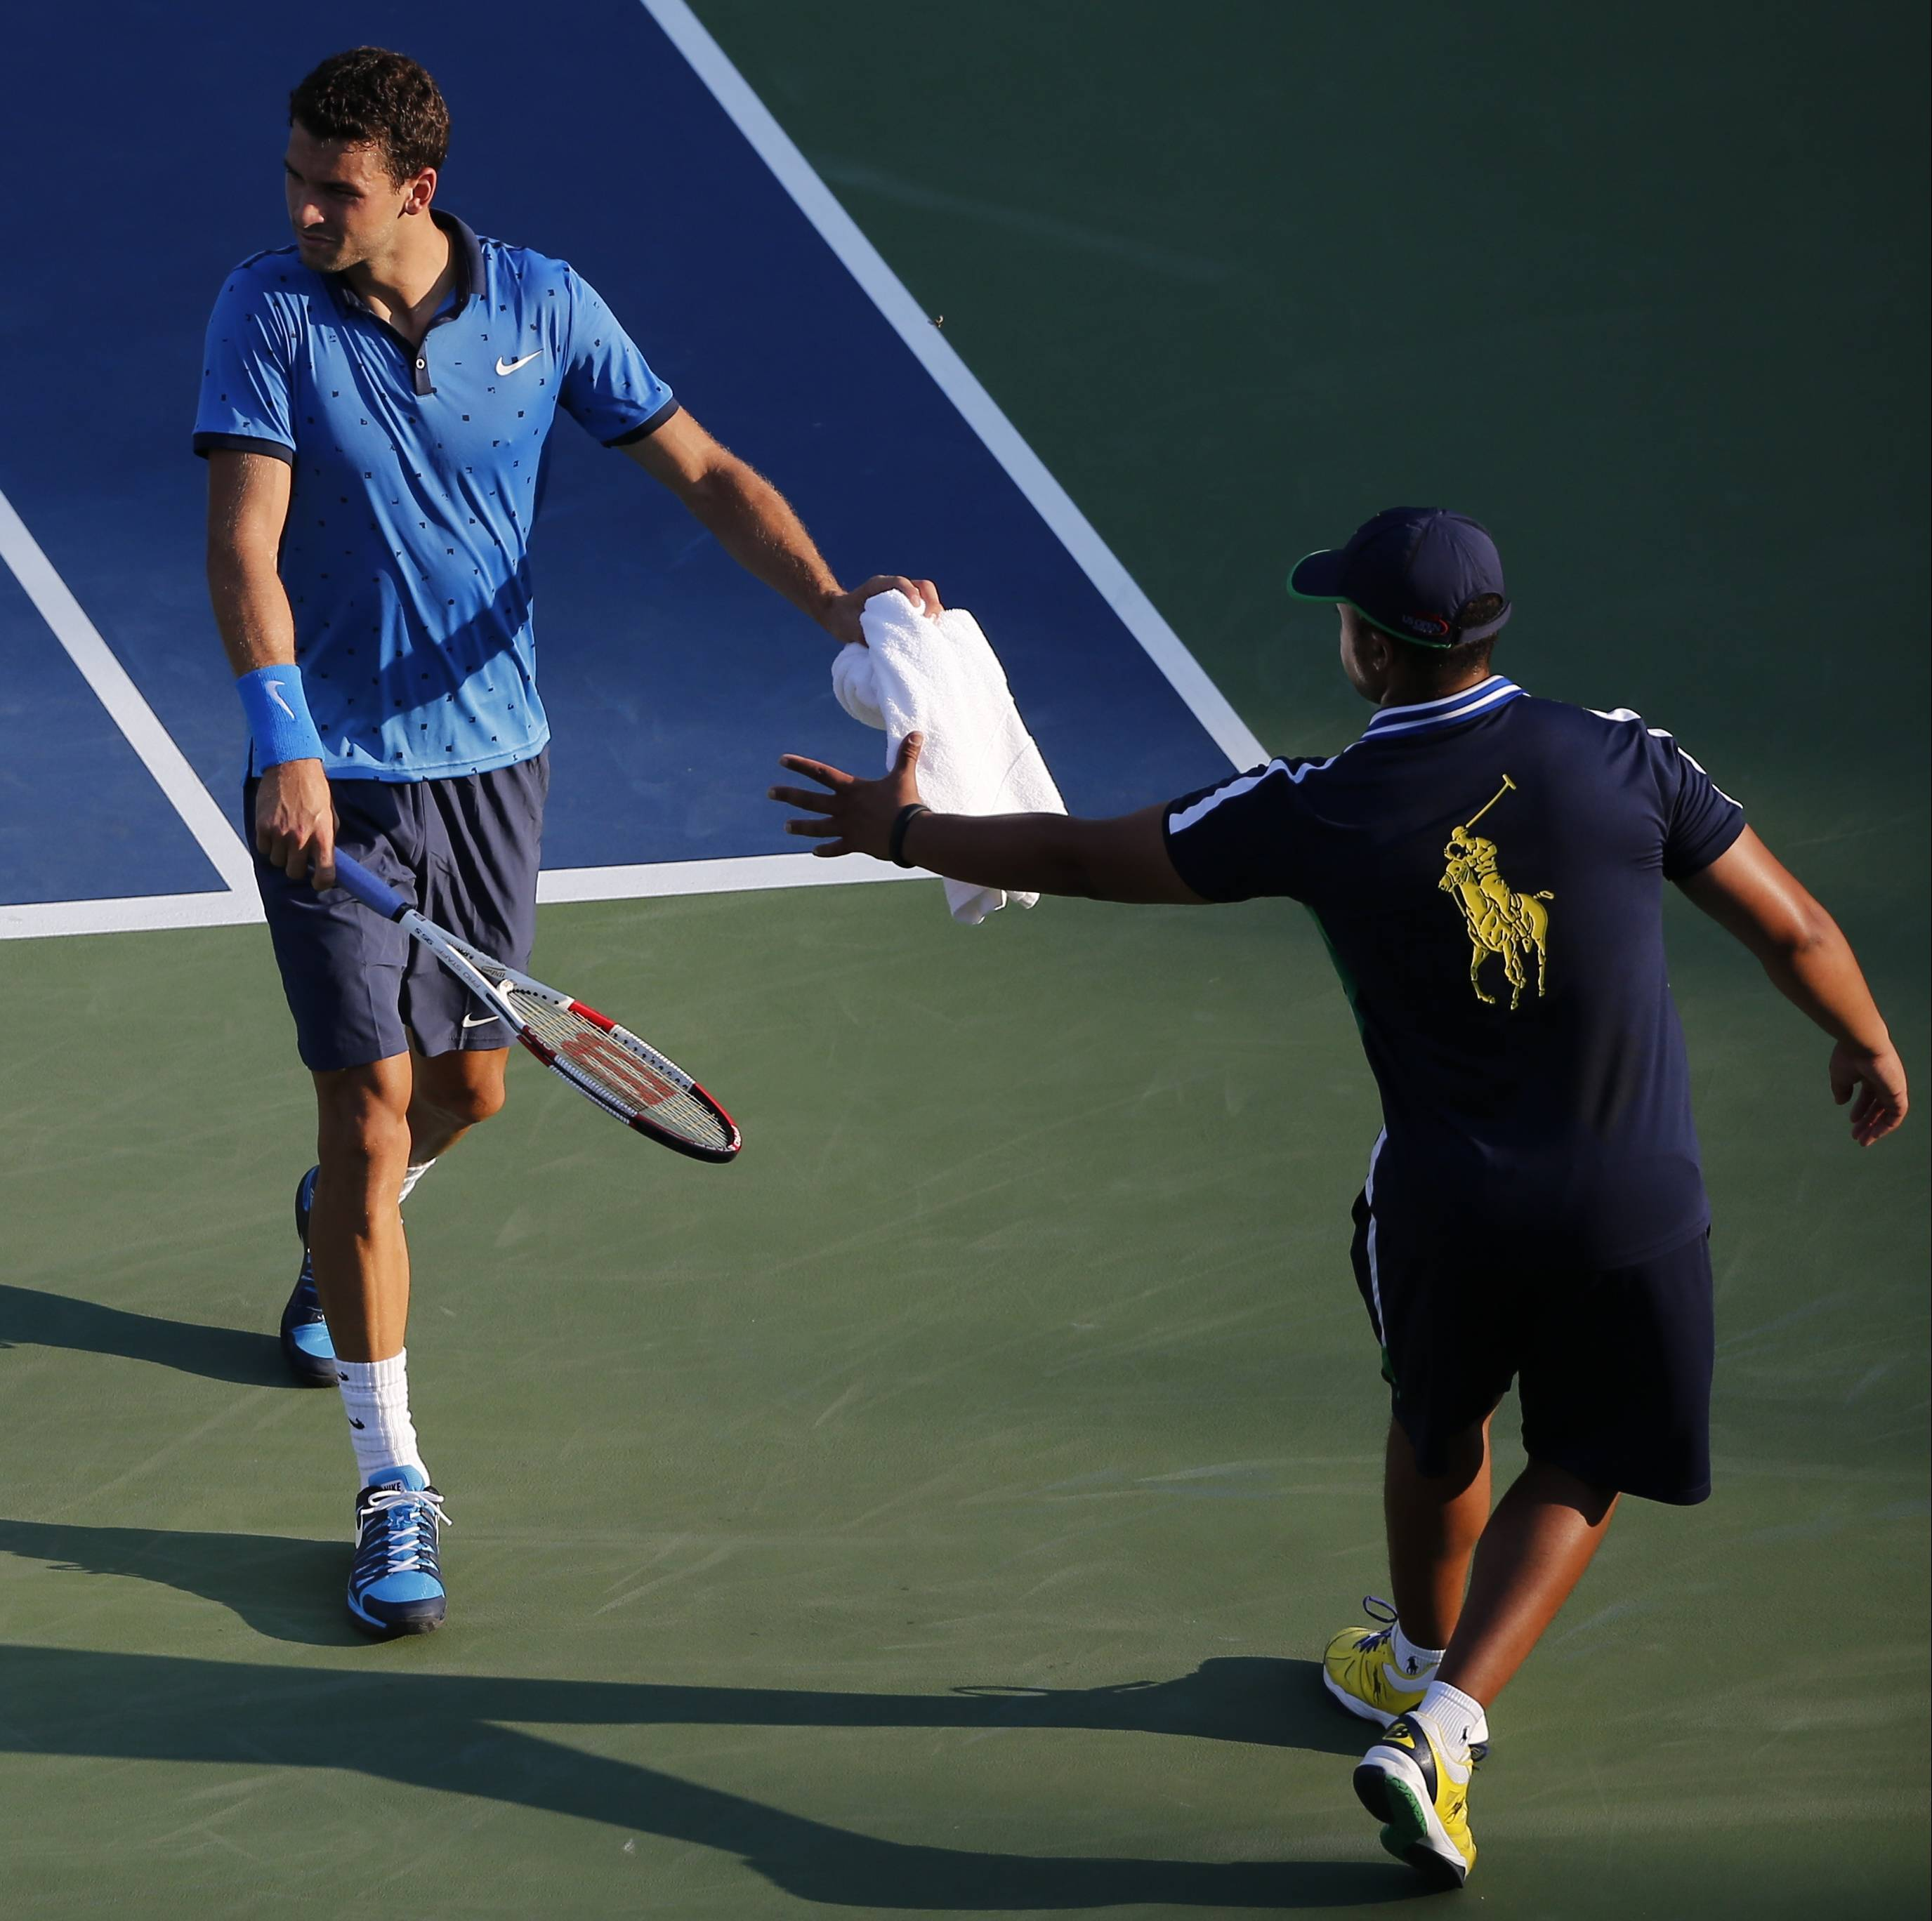 Grigor Dimitrov, of Bulgaria, hands a towel back to a ball person after wiping sweat from his face during the second round of the 2014 U.S. Open tennis tournament, Wednesday, Aug. 27, 2014, in New York.